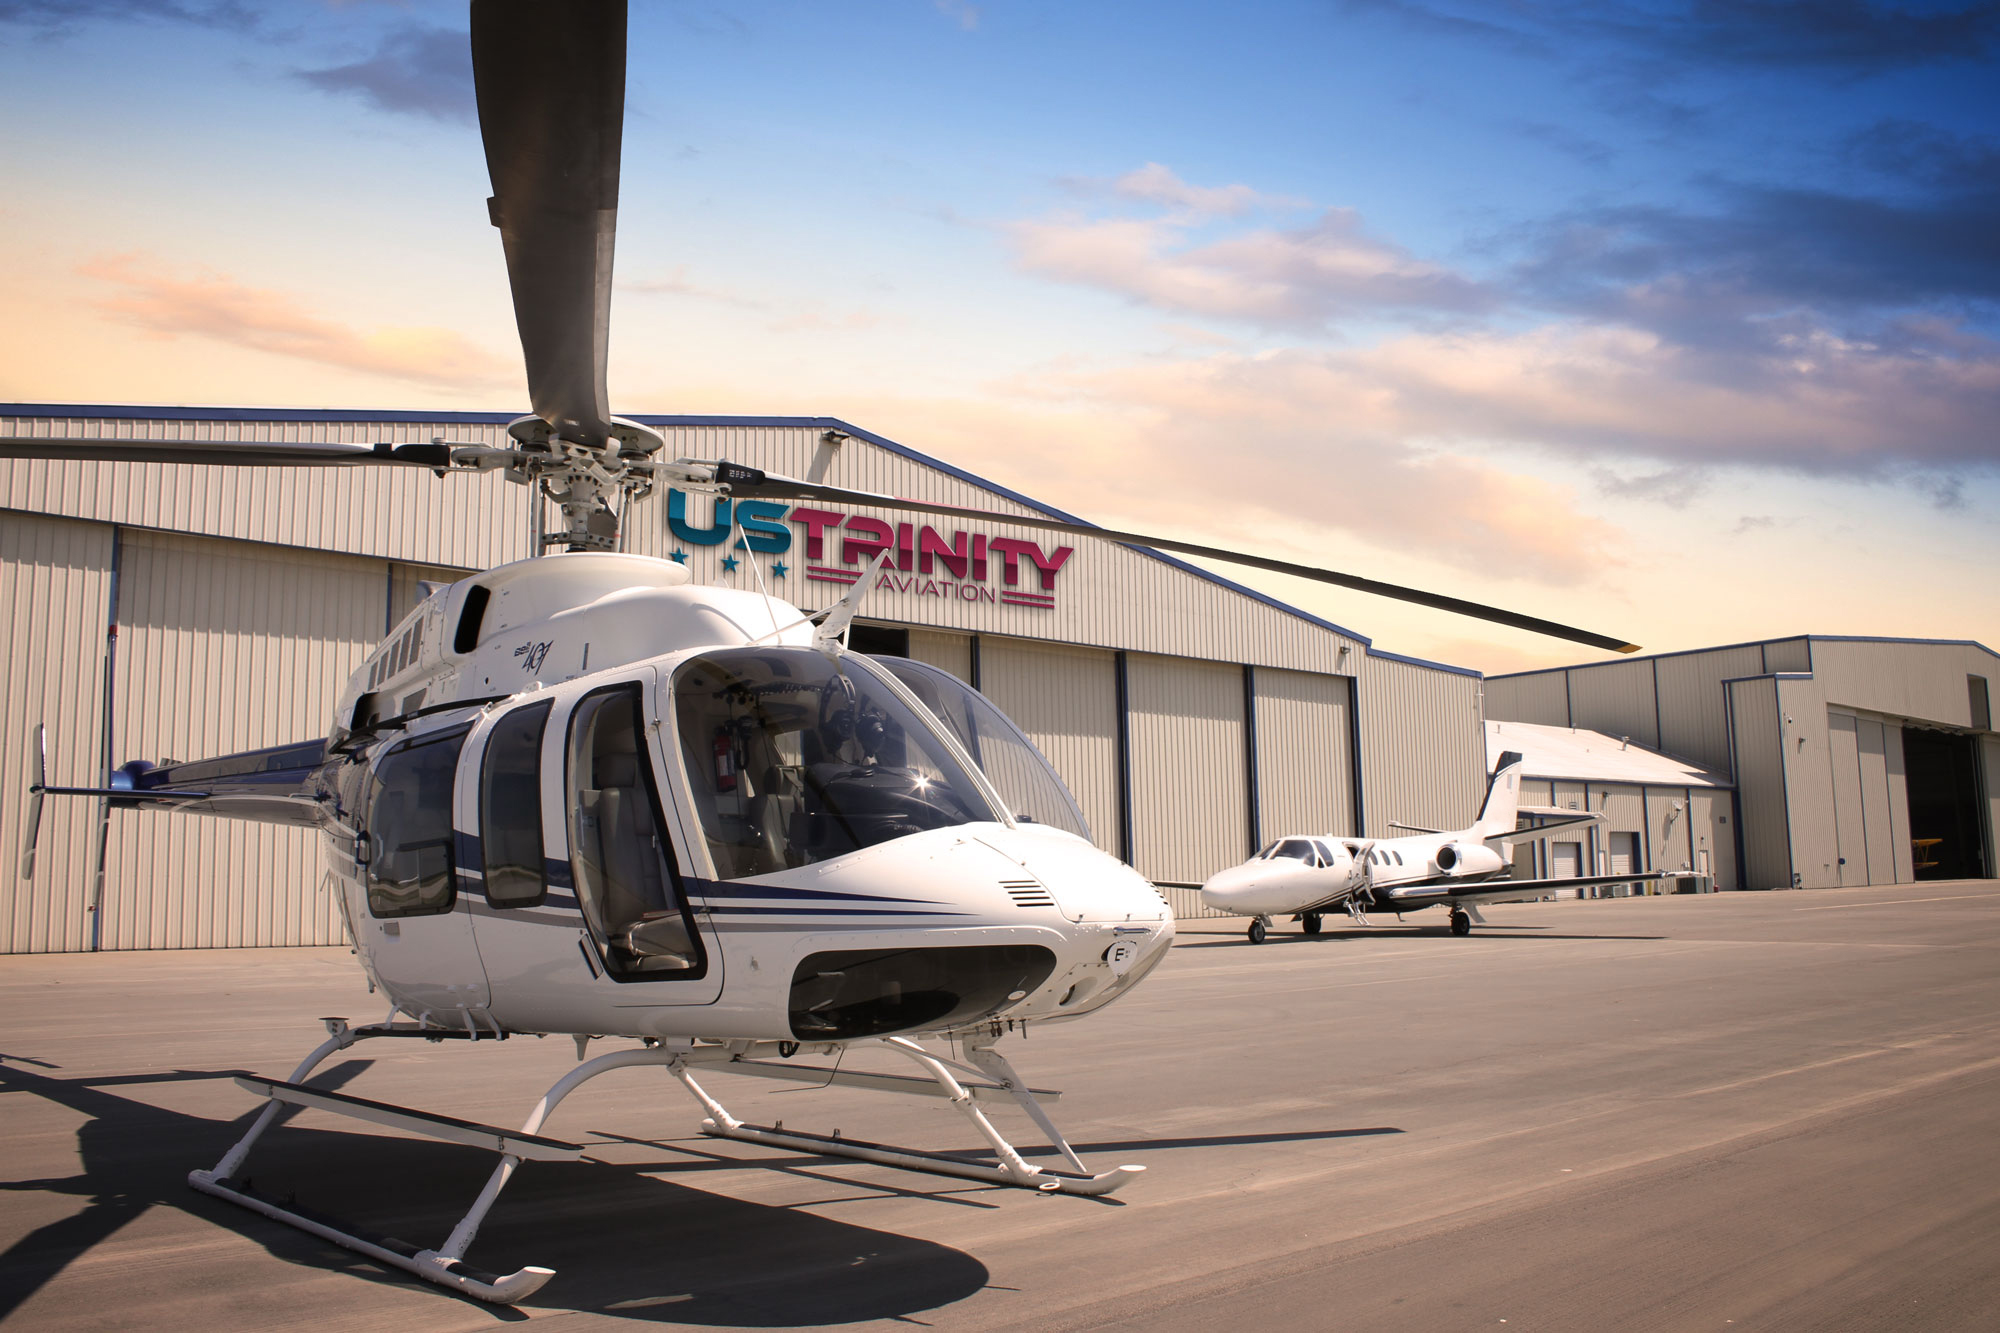 Exterior image of US Trinity Aviation Hangar with helicopter and jet